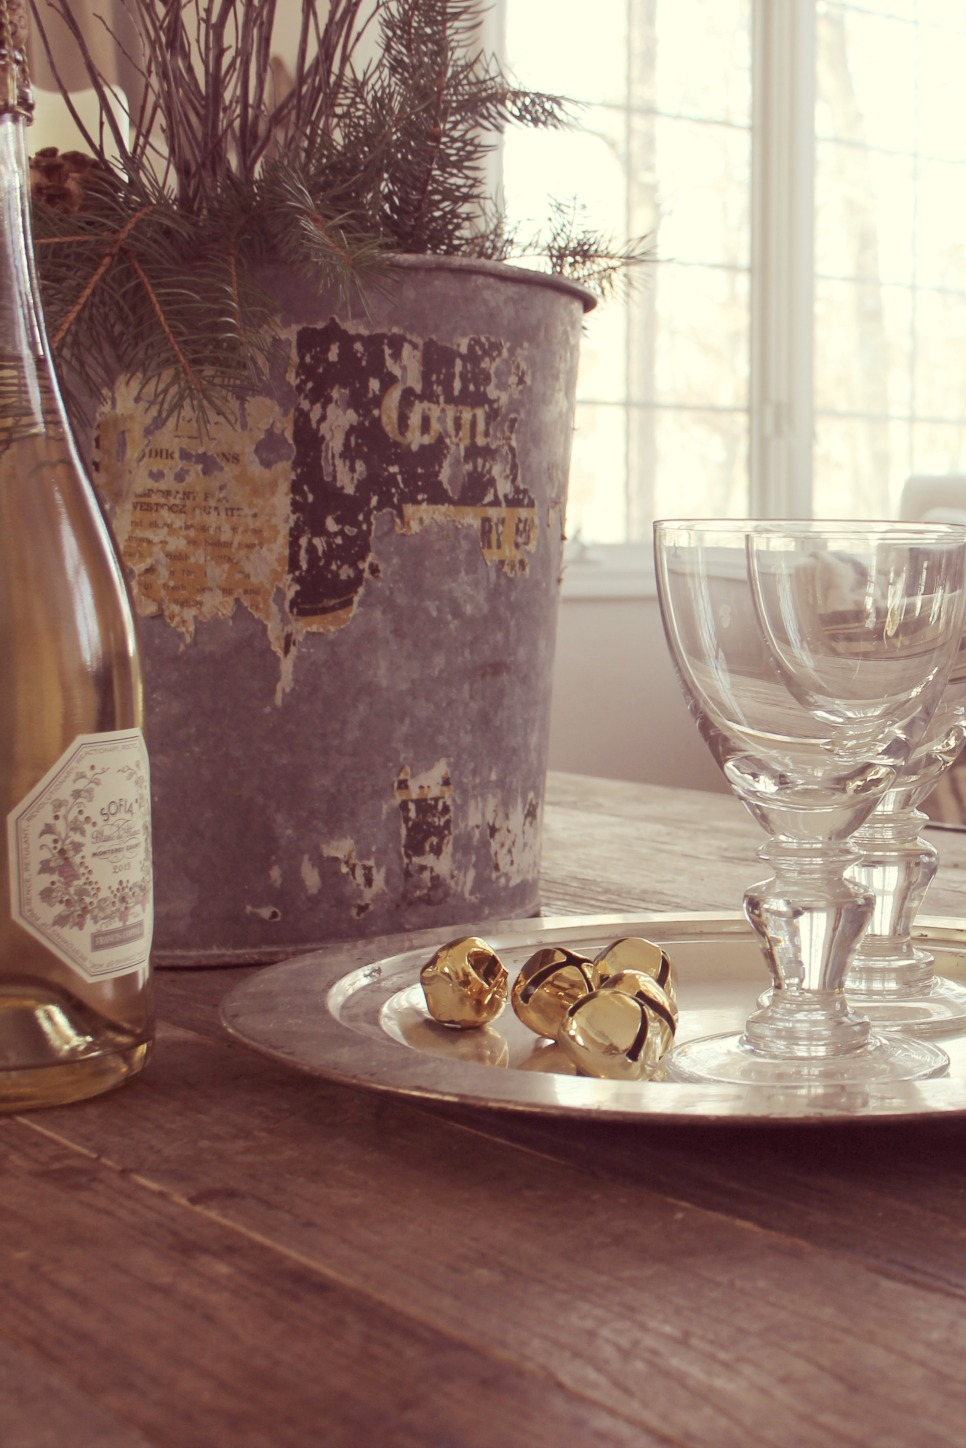 White wine, goblets, and gold bells on rustic table - Hello Lovely Studio